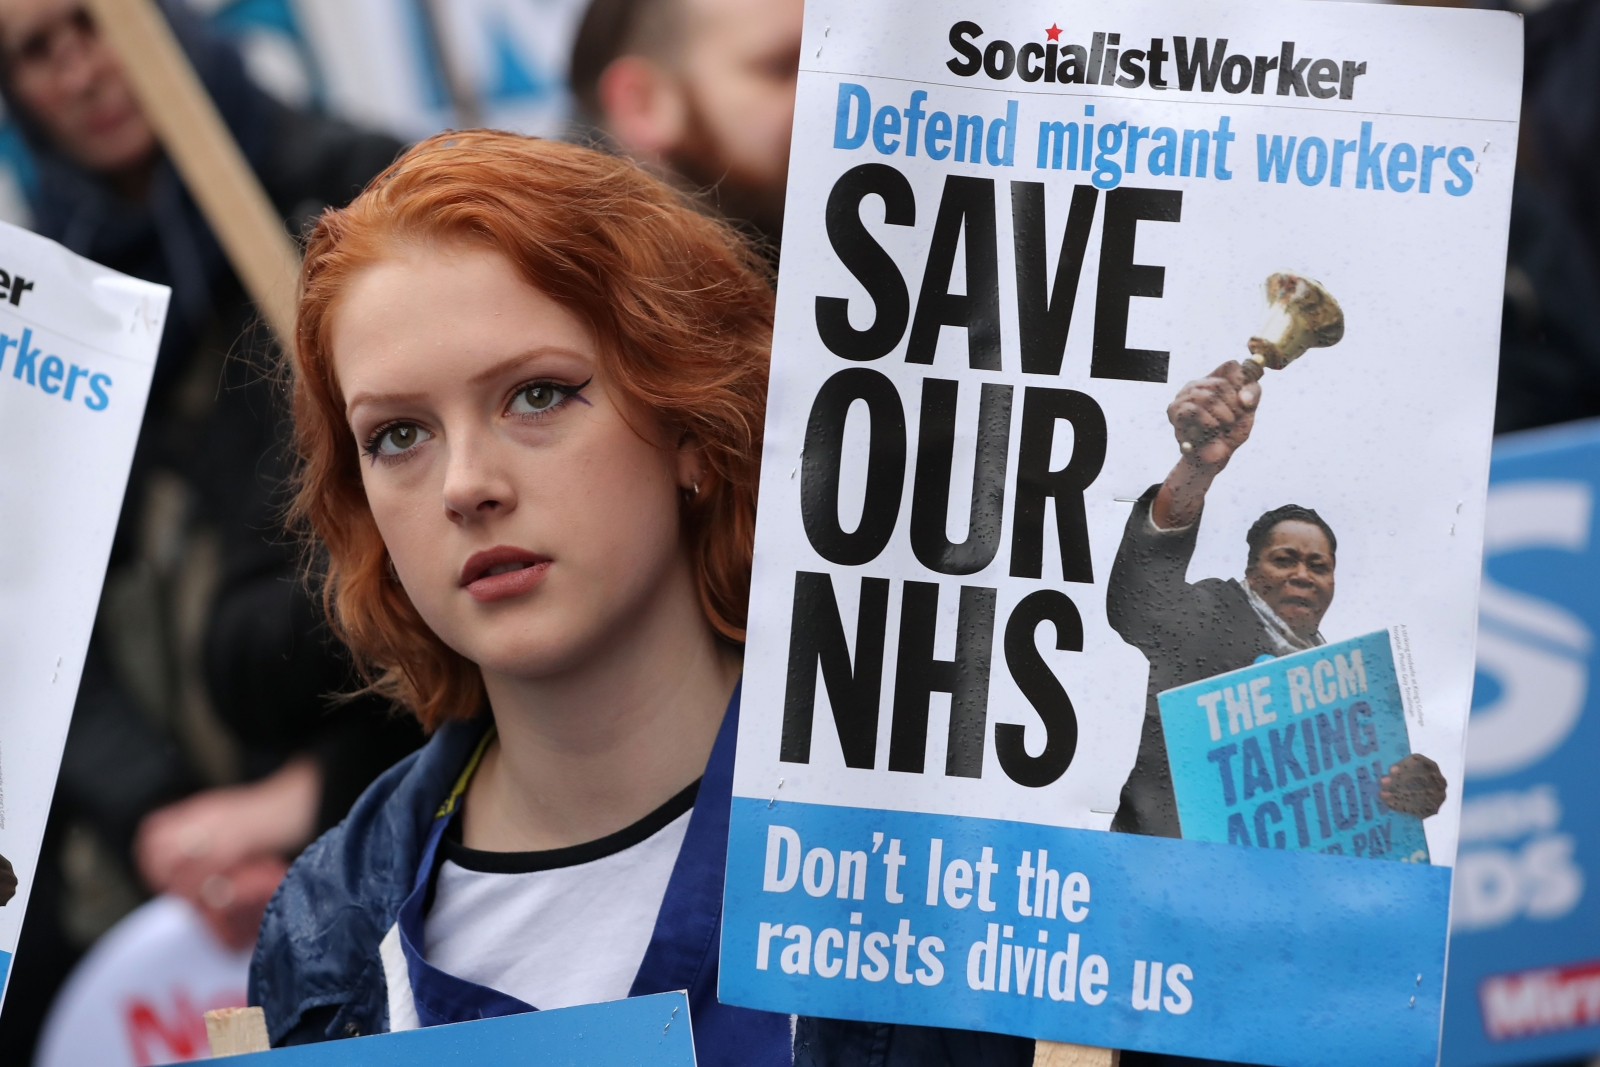 """""""No Ifs, No Buts, No NHS Cuts"""" - Thousands March On Downing Street Over NHS Crisis"""